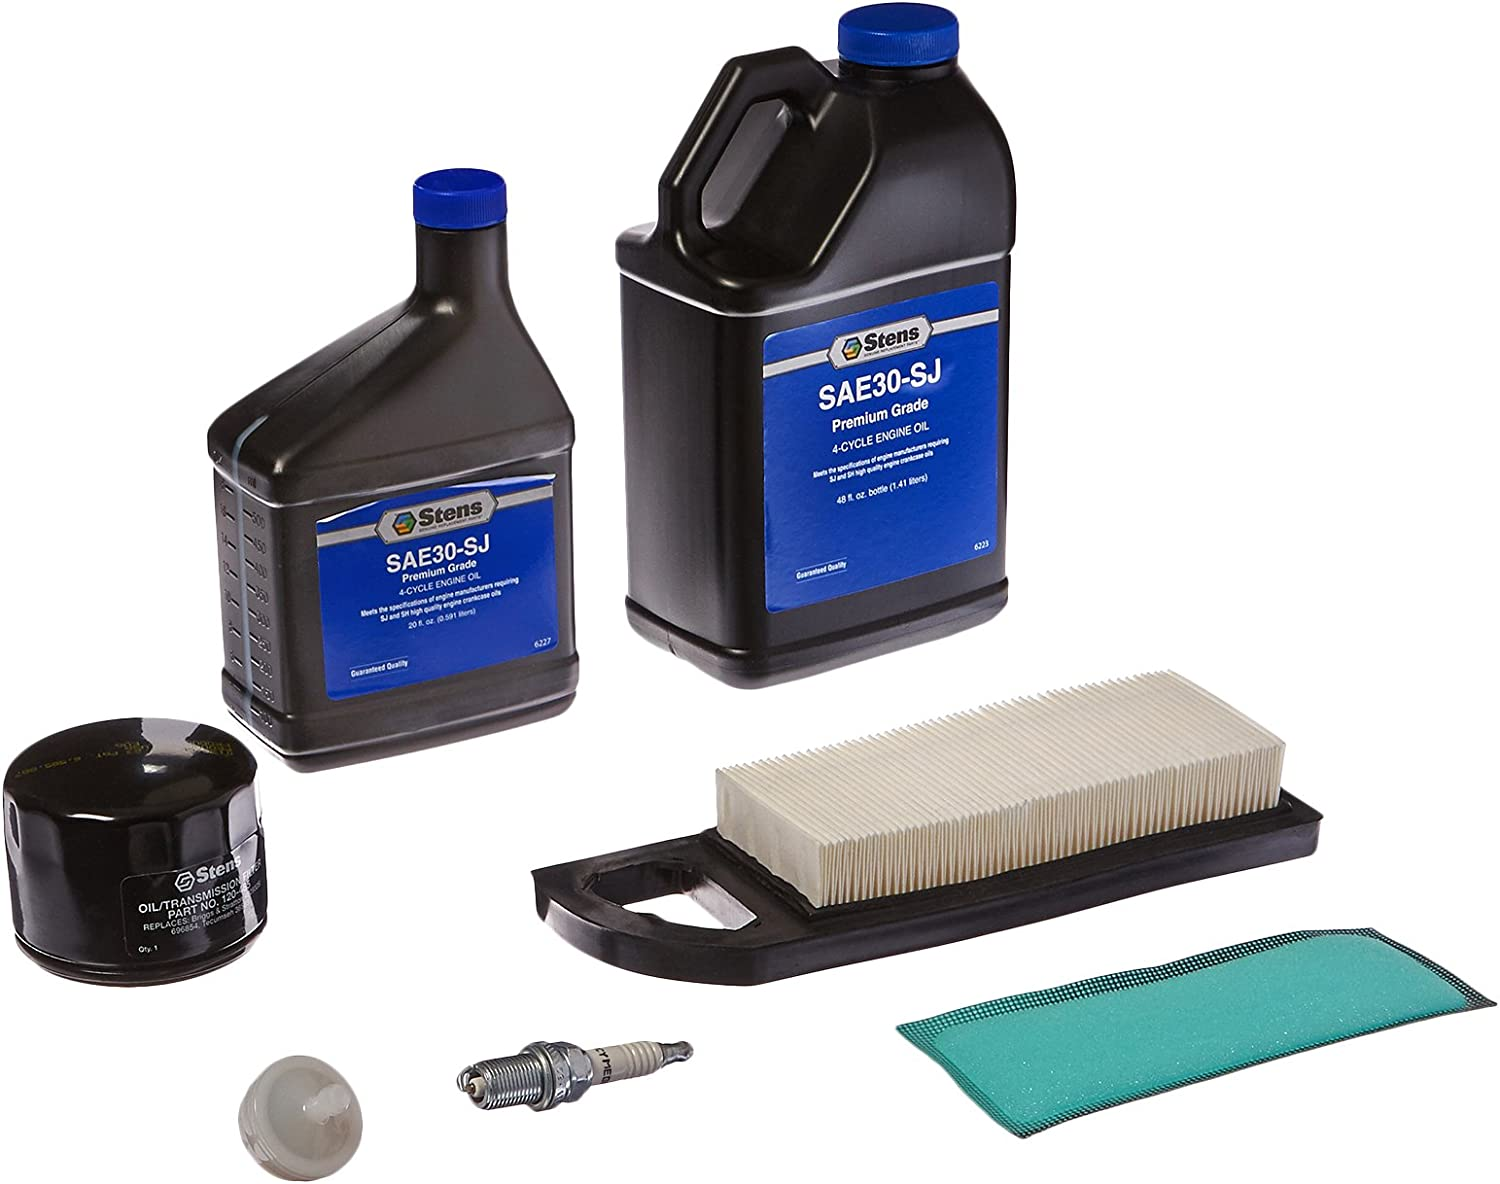 Stens 785-521 Engine Tune-Up/ Maintenance Kit For Briggs & Stratton 5127A Intek 15.5, 17, 17.5 HP